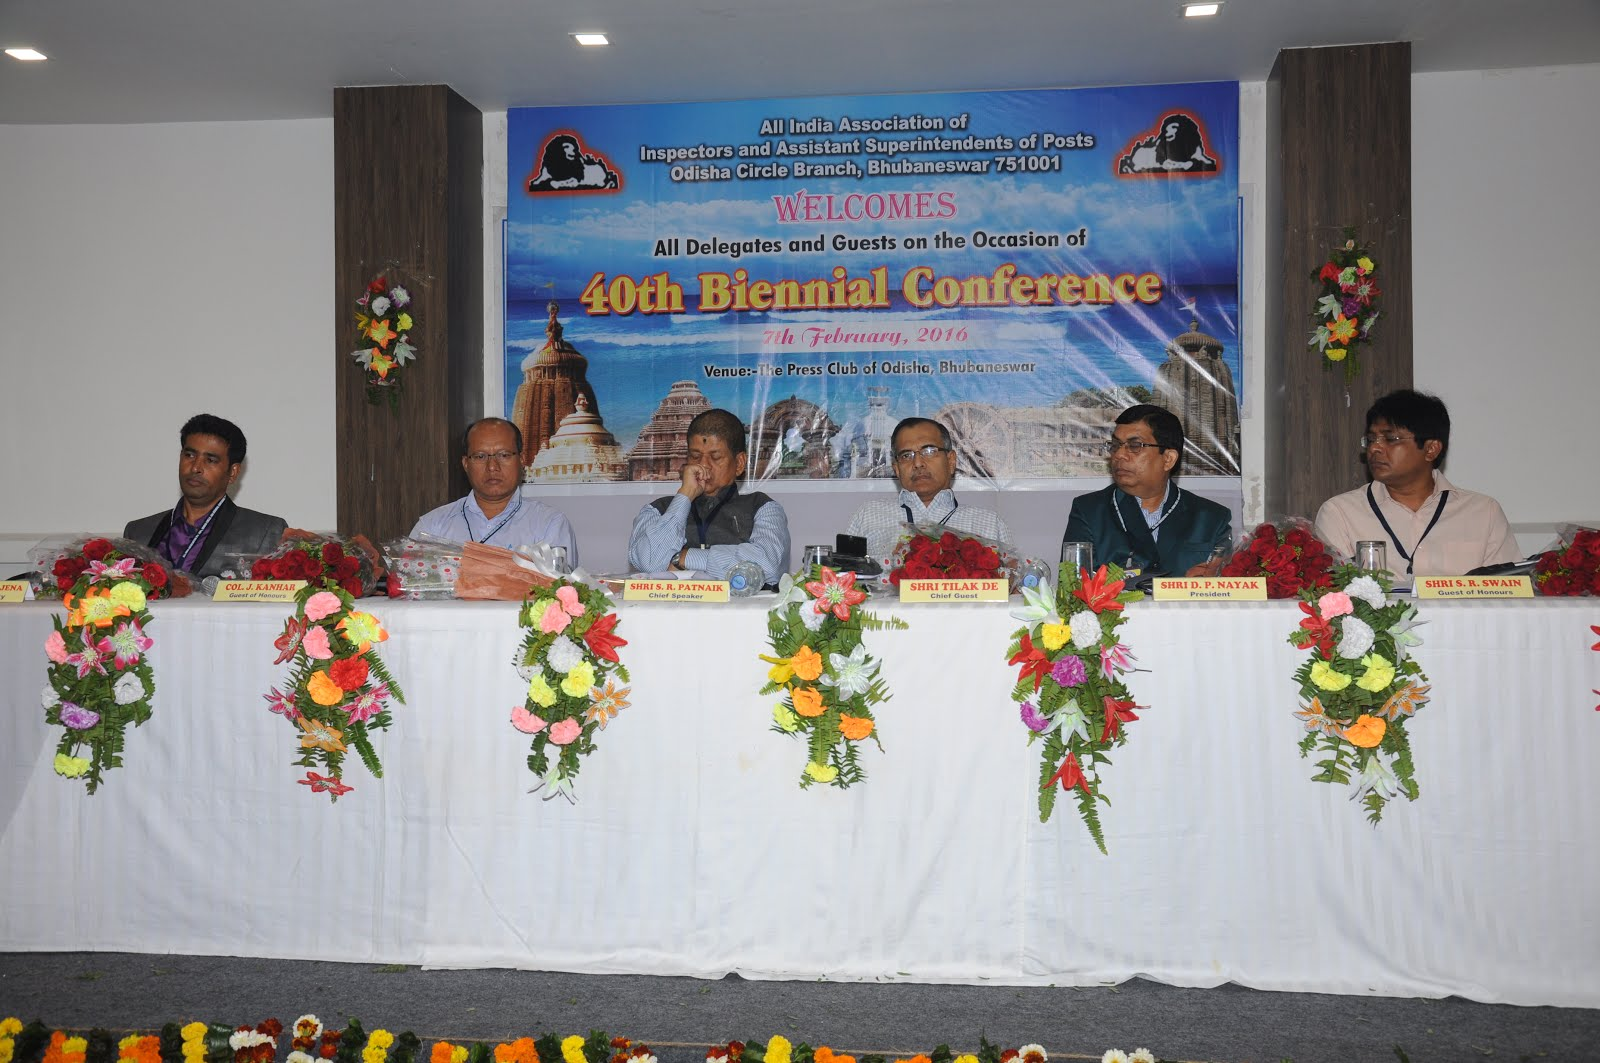 40th Biennial Circle Conference at Bhubaneswar on 7th February, 2016